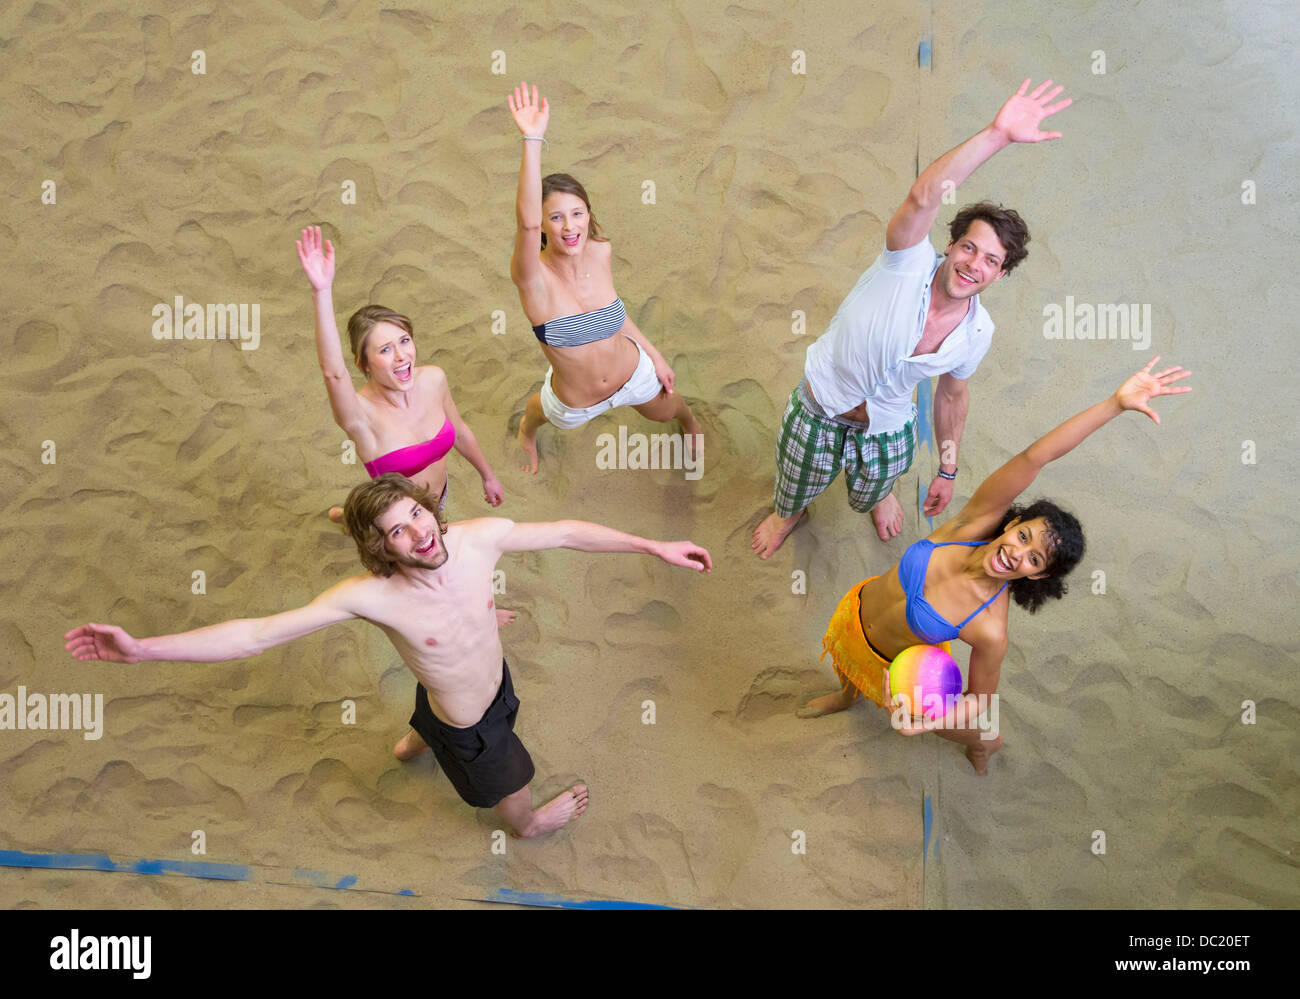 Aerial view of friends waving at indoor beach volleyball - Stock Image